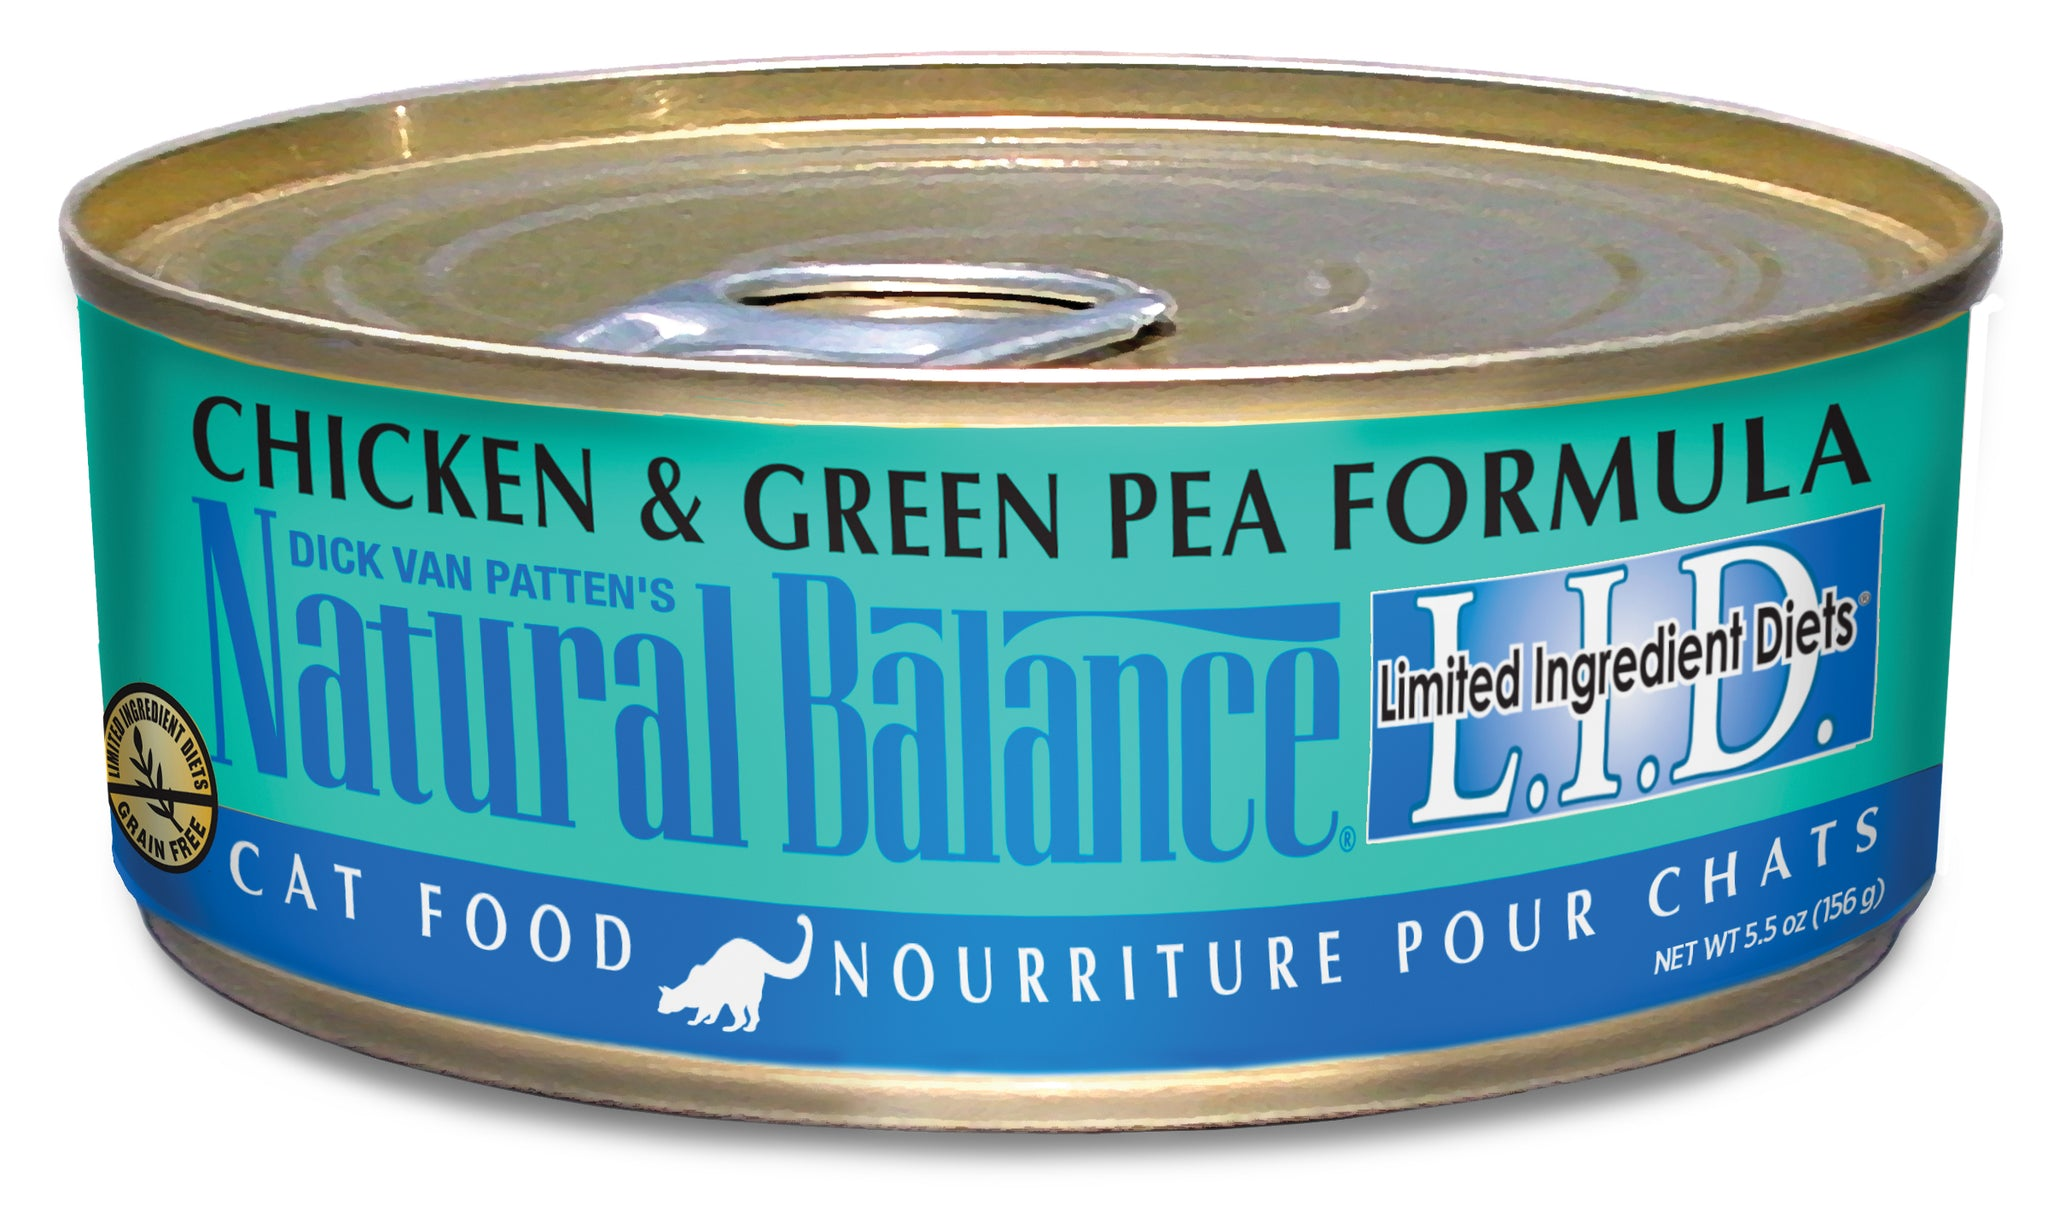 Natural Balance L.I.D. Chicken & Green Pea Canned Wet Cat Food 5.5-oz Can at NJPetSupply.com